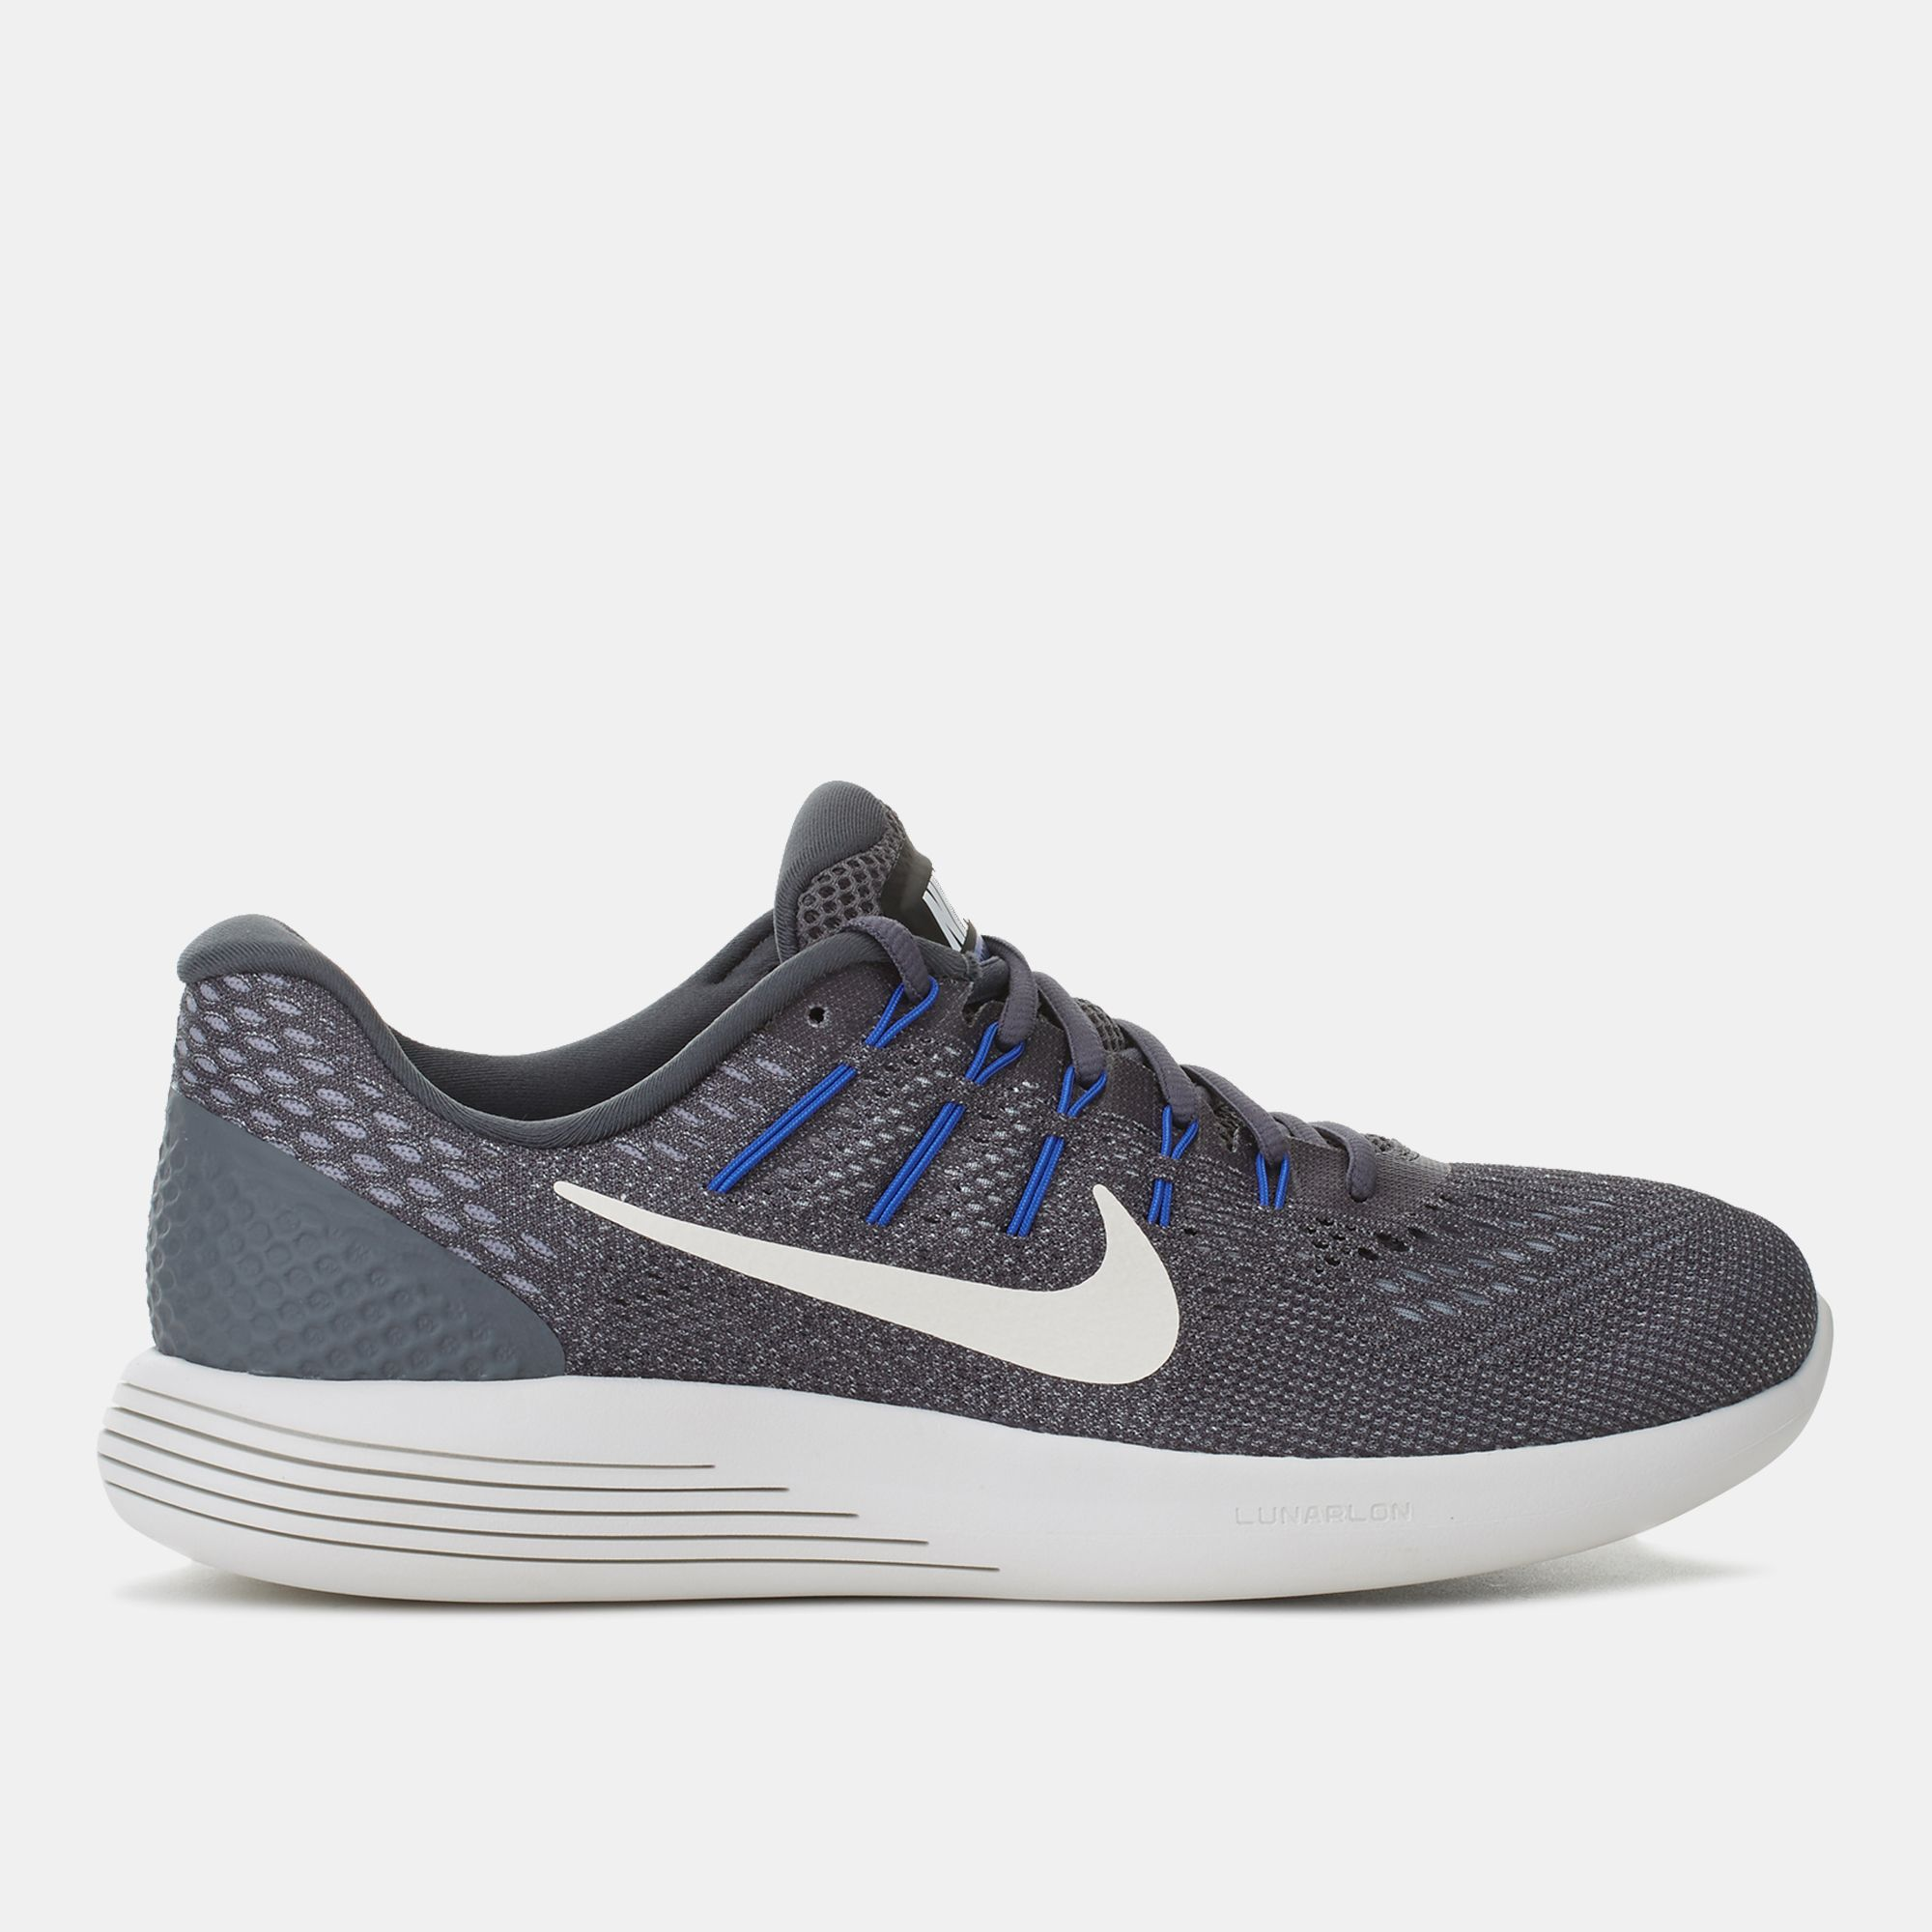 low priced 5316f a55e4 Nike Lunarglide 8 Running Shoe | Running Shoes | Shoes ...